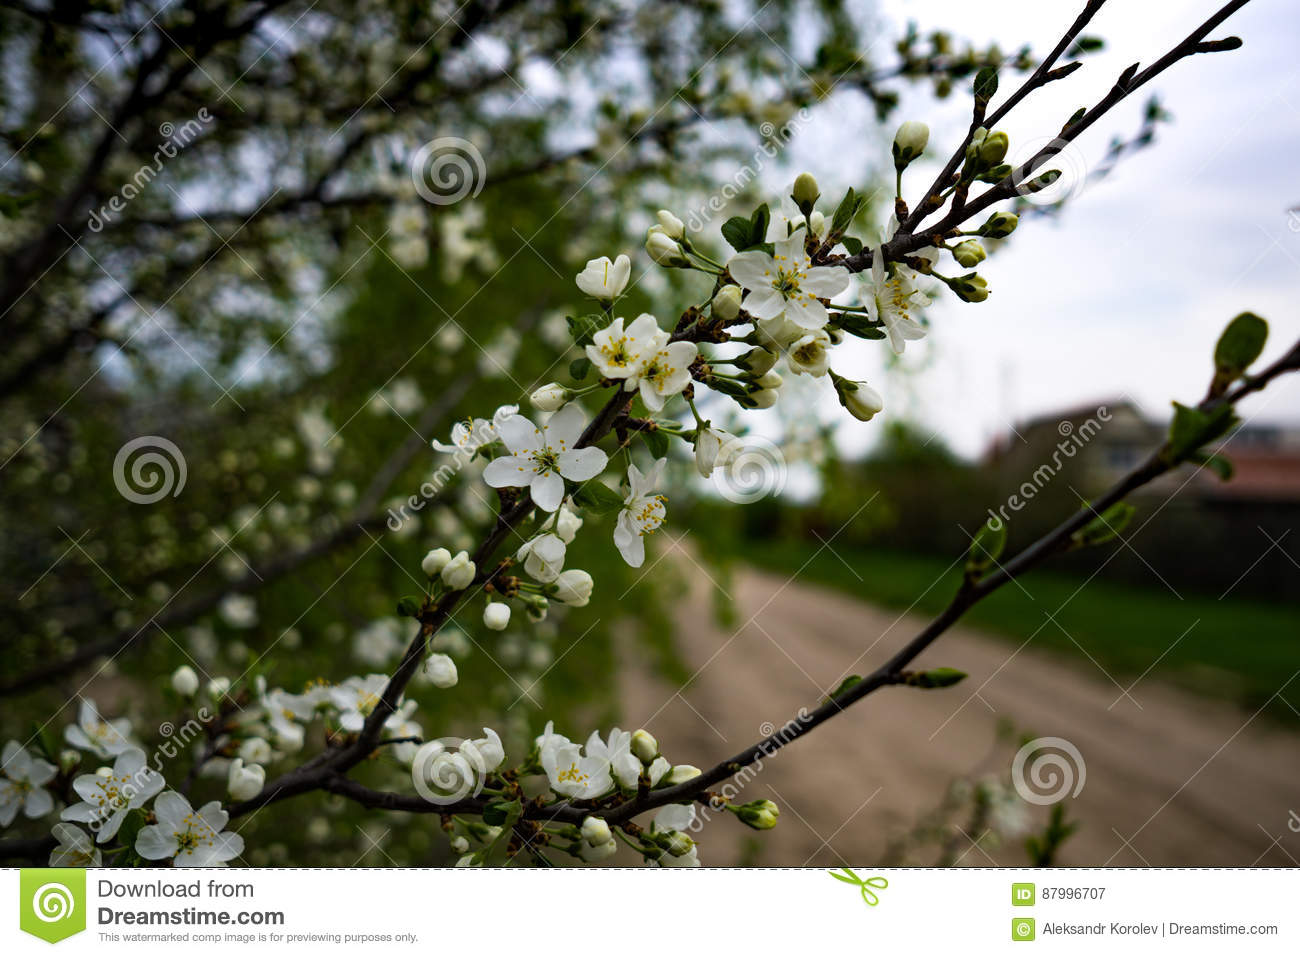 Small white flowers on a tree stock image image of floral spring branch of a tree with blossoming white small flowers on a blurred background spring background with white flowers on a tree branch mightylinksfo